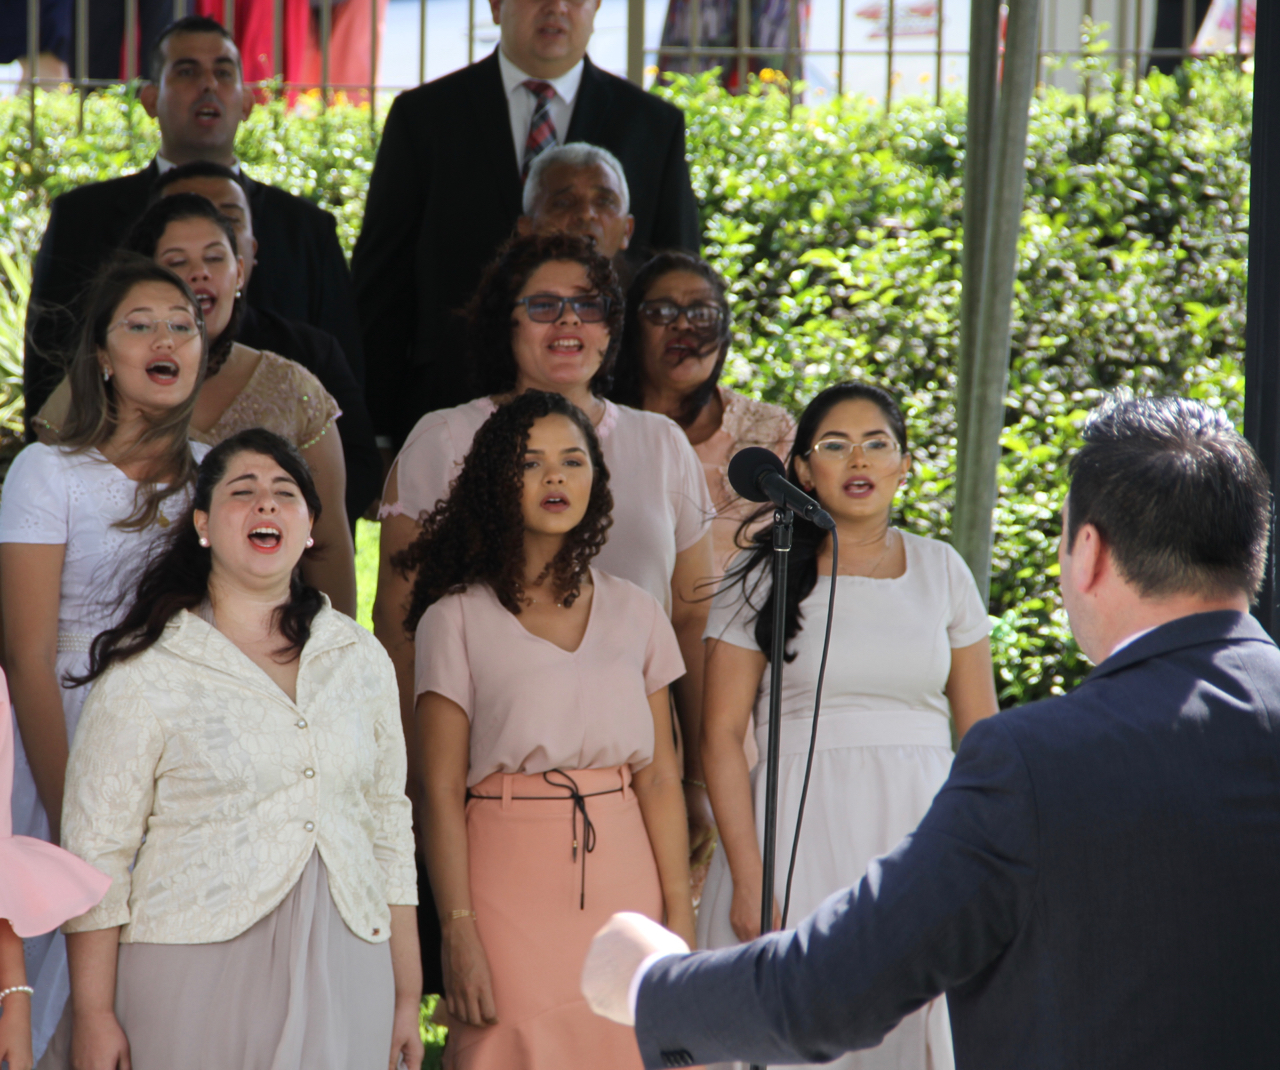 Members of the choir sing at the cornerstone ceremony of the Fortaleza Brazil Temple dedication on Sunday, June 2, 2019.